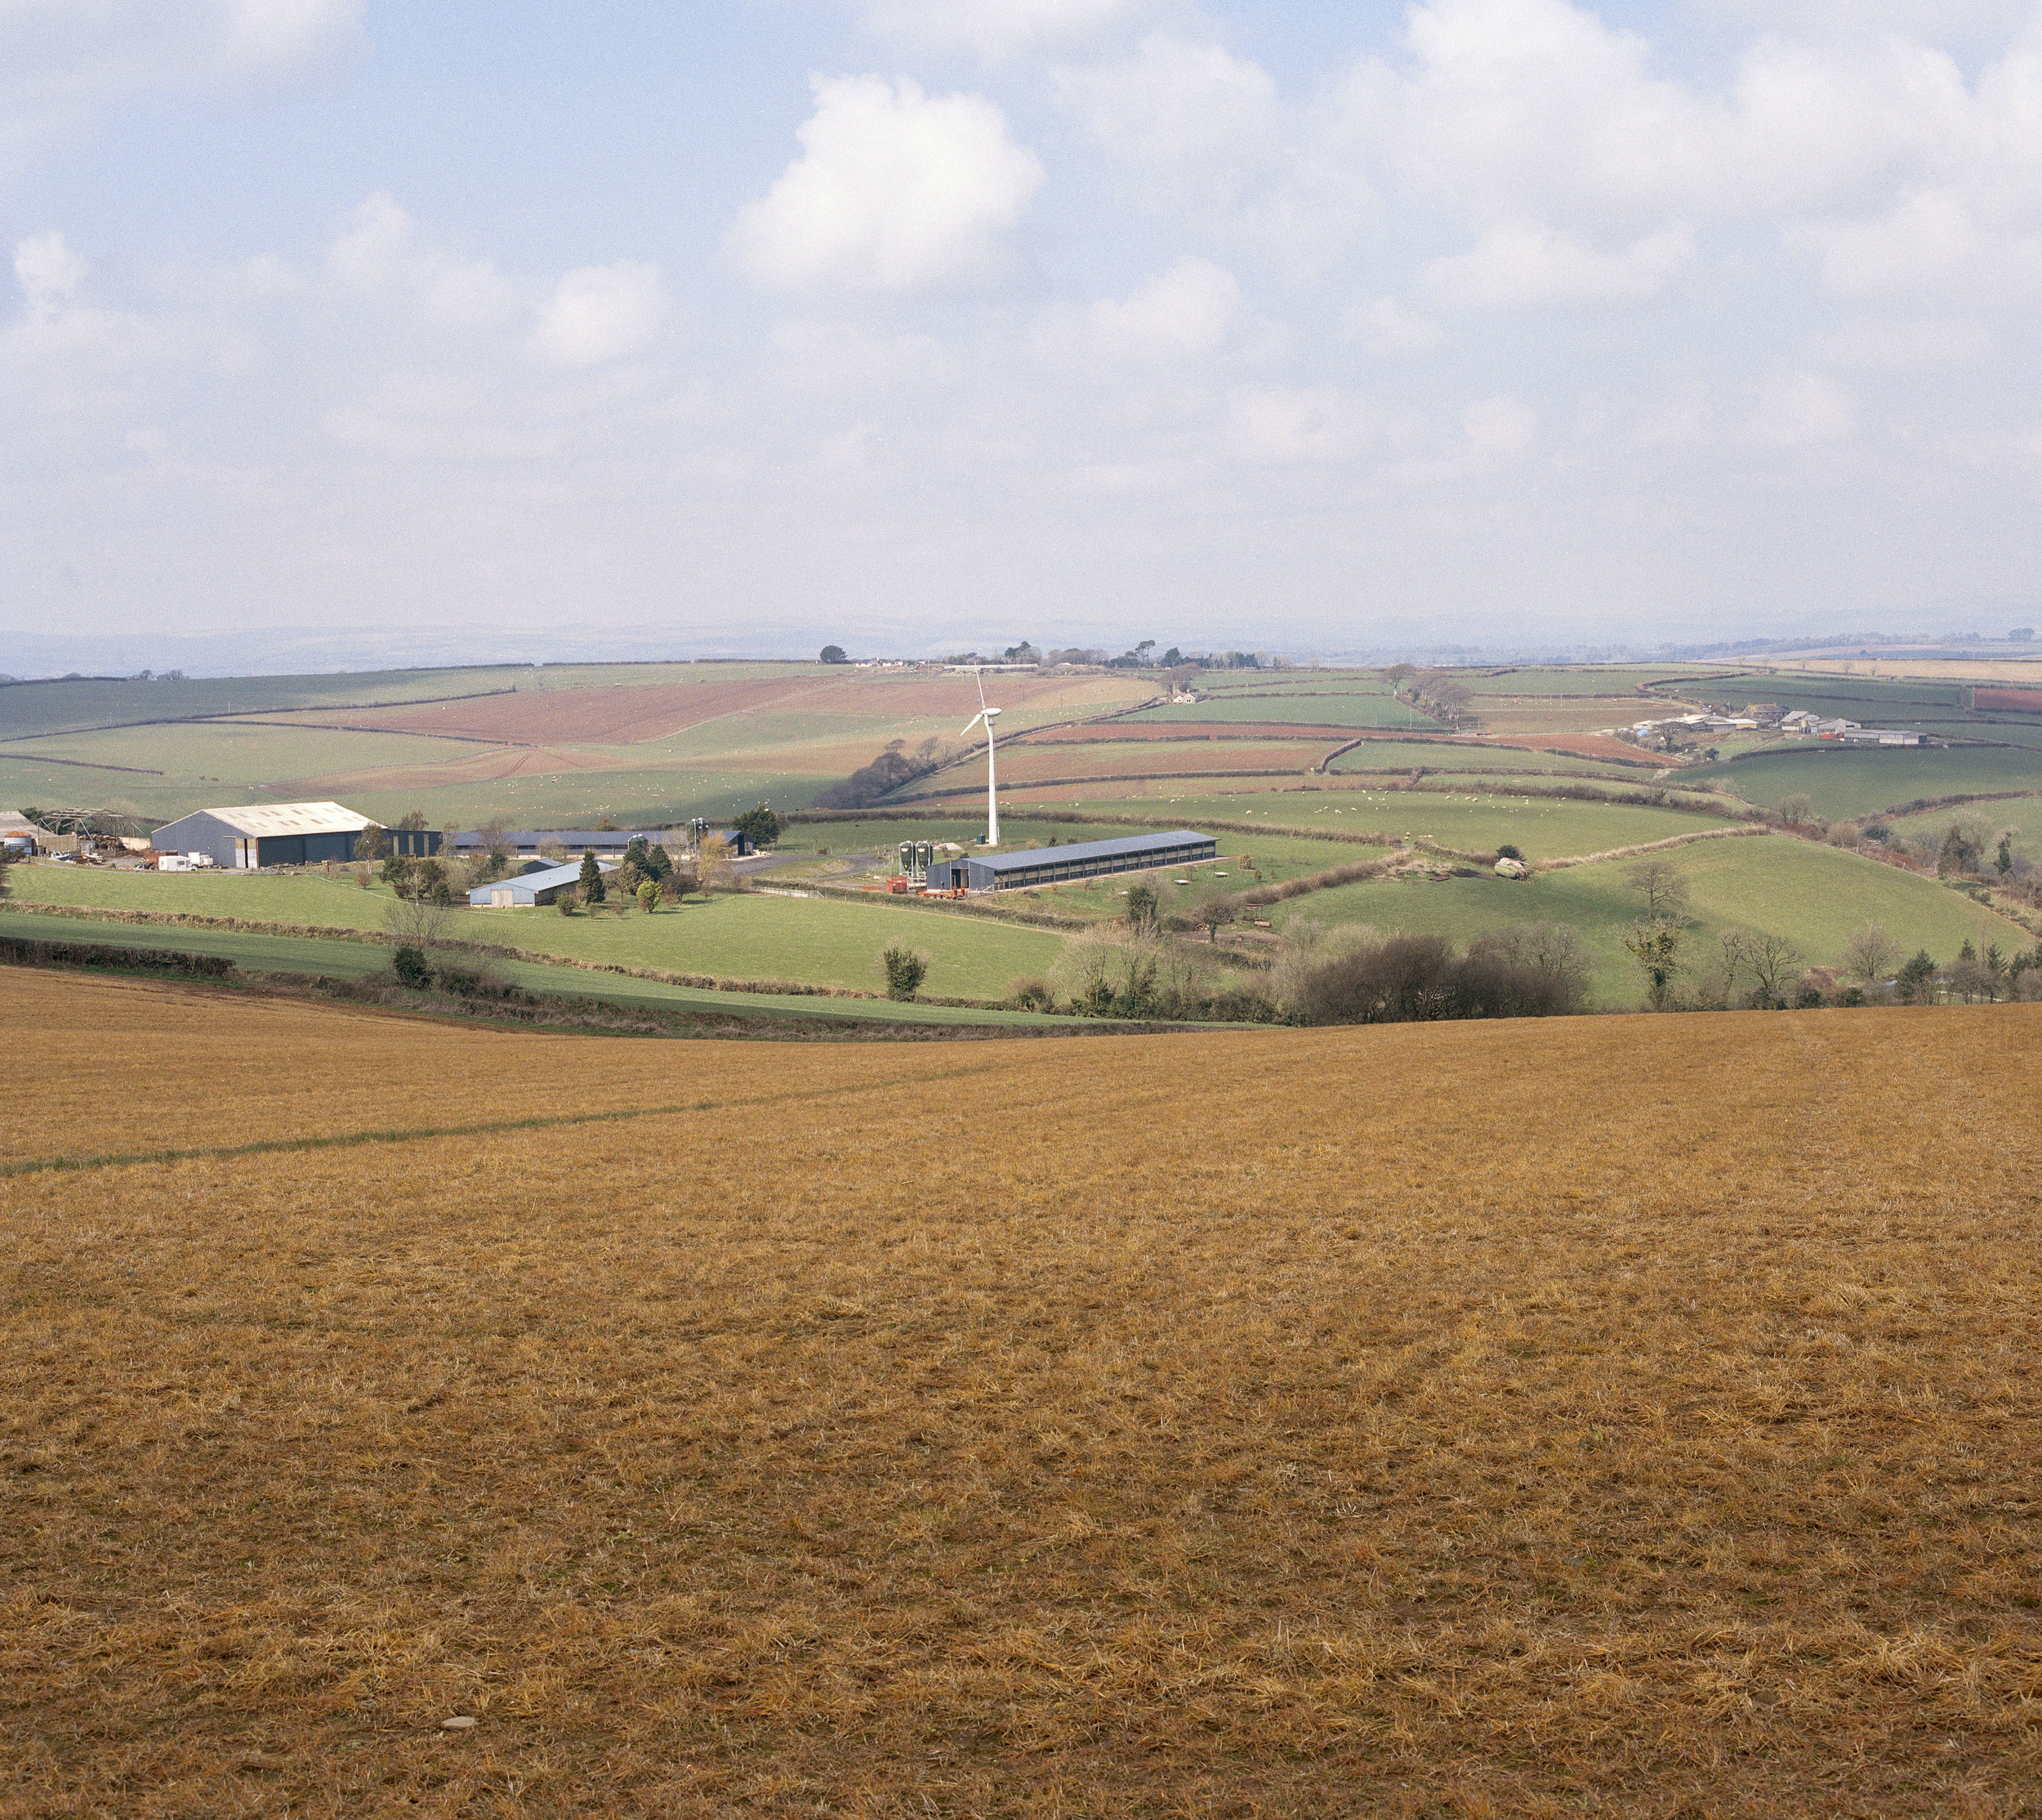 A landscape of Hembrough Farm. Hembrough Farm is owned by western rider Brian Rowden who runs his rodeo events there.